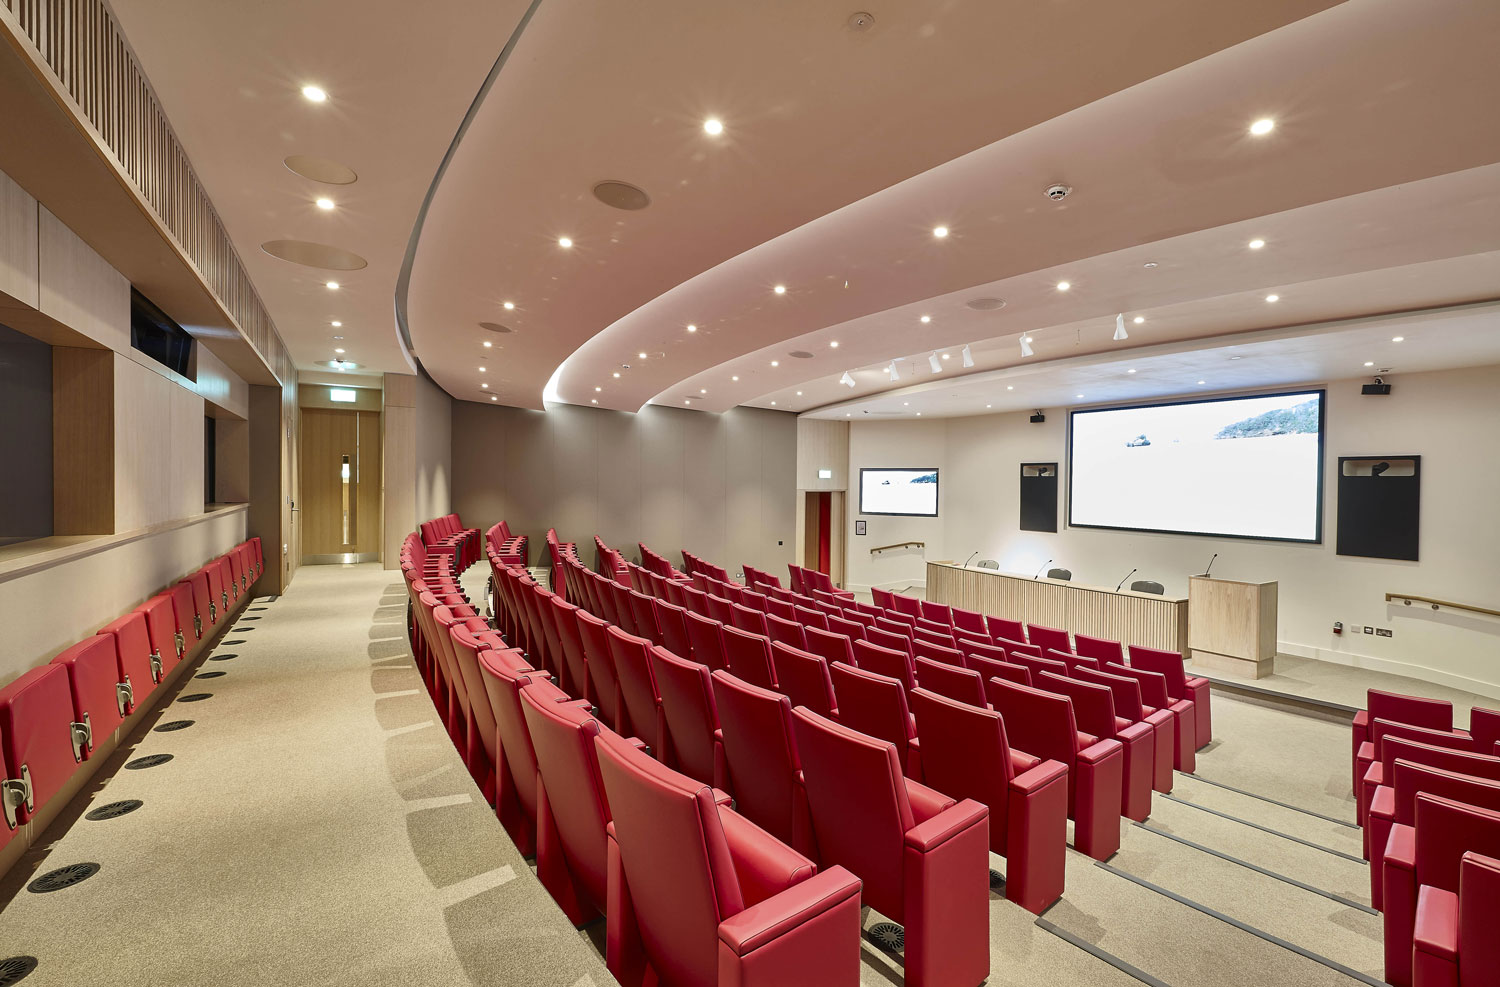 Institute of Engineering & Technology Turing Lecture Theatre | Commercial Photographer London